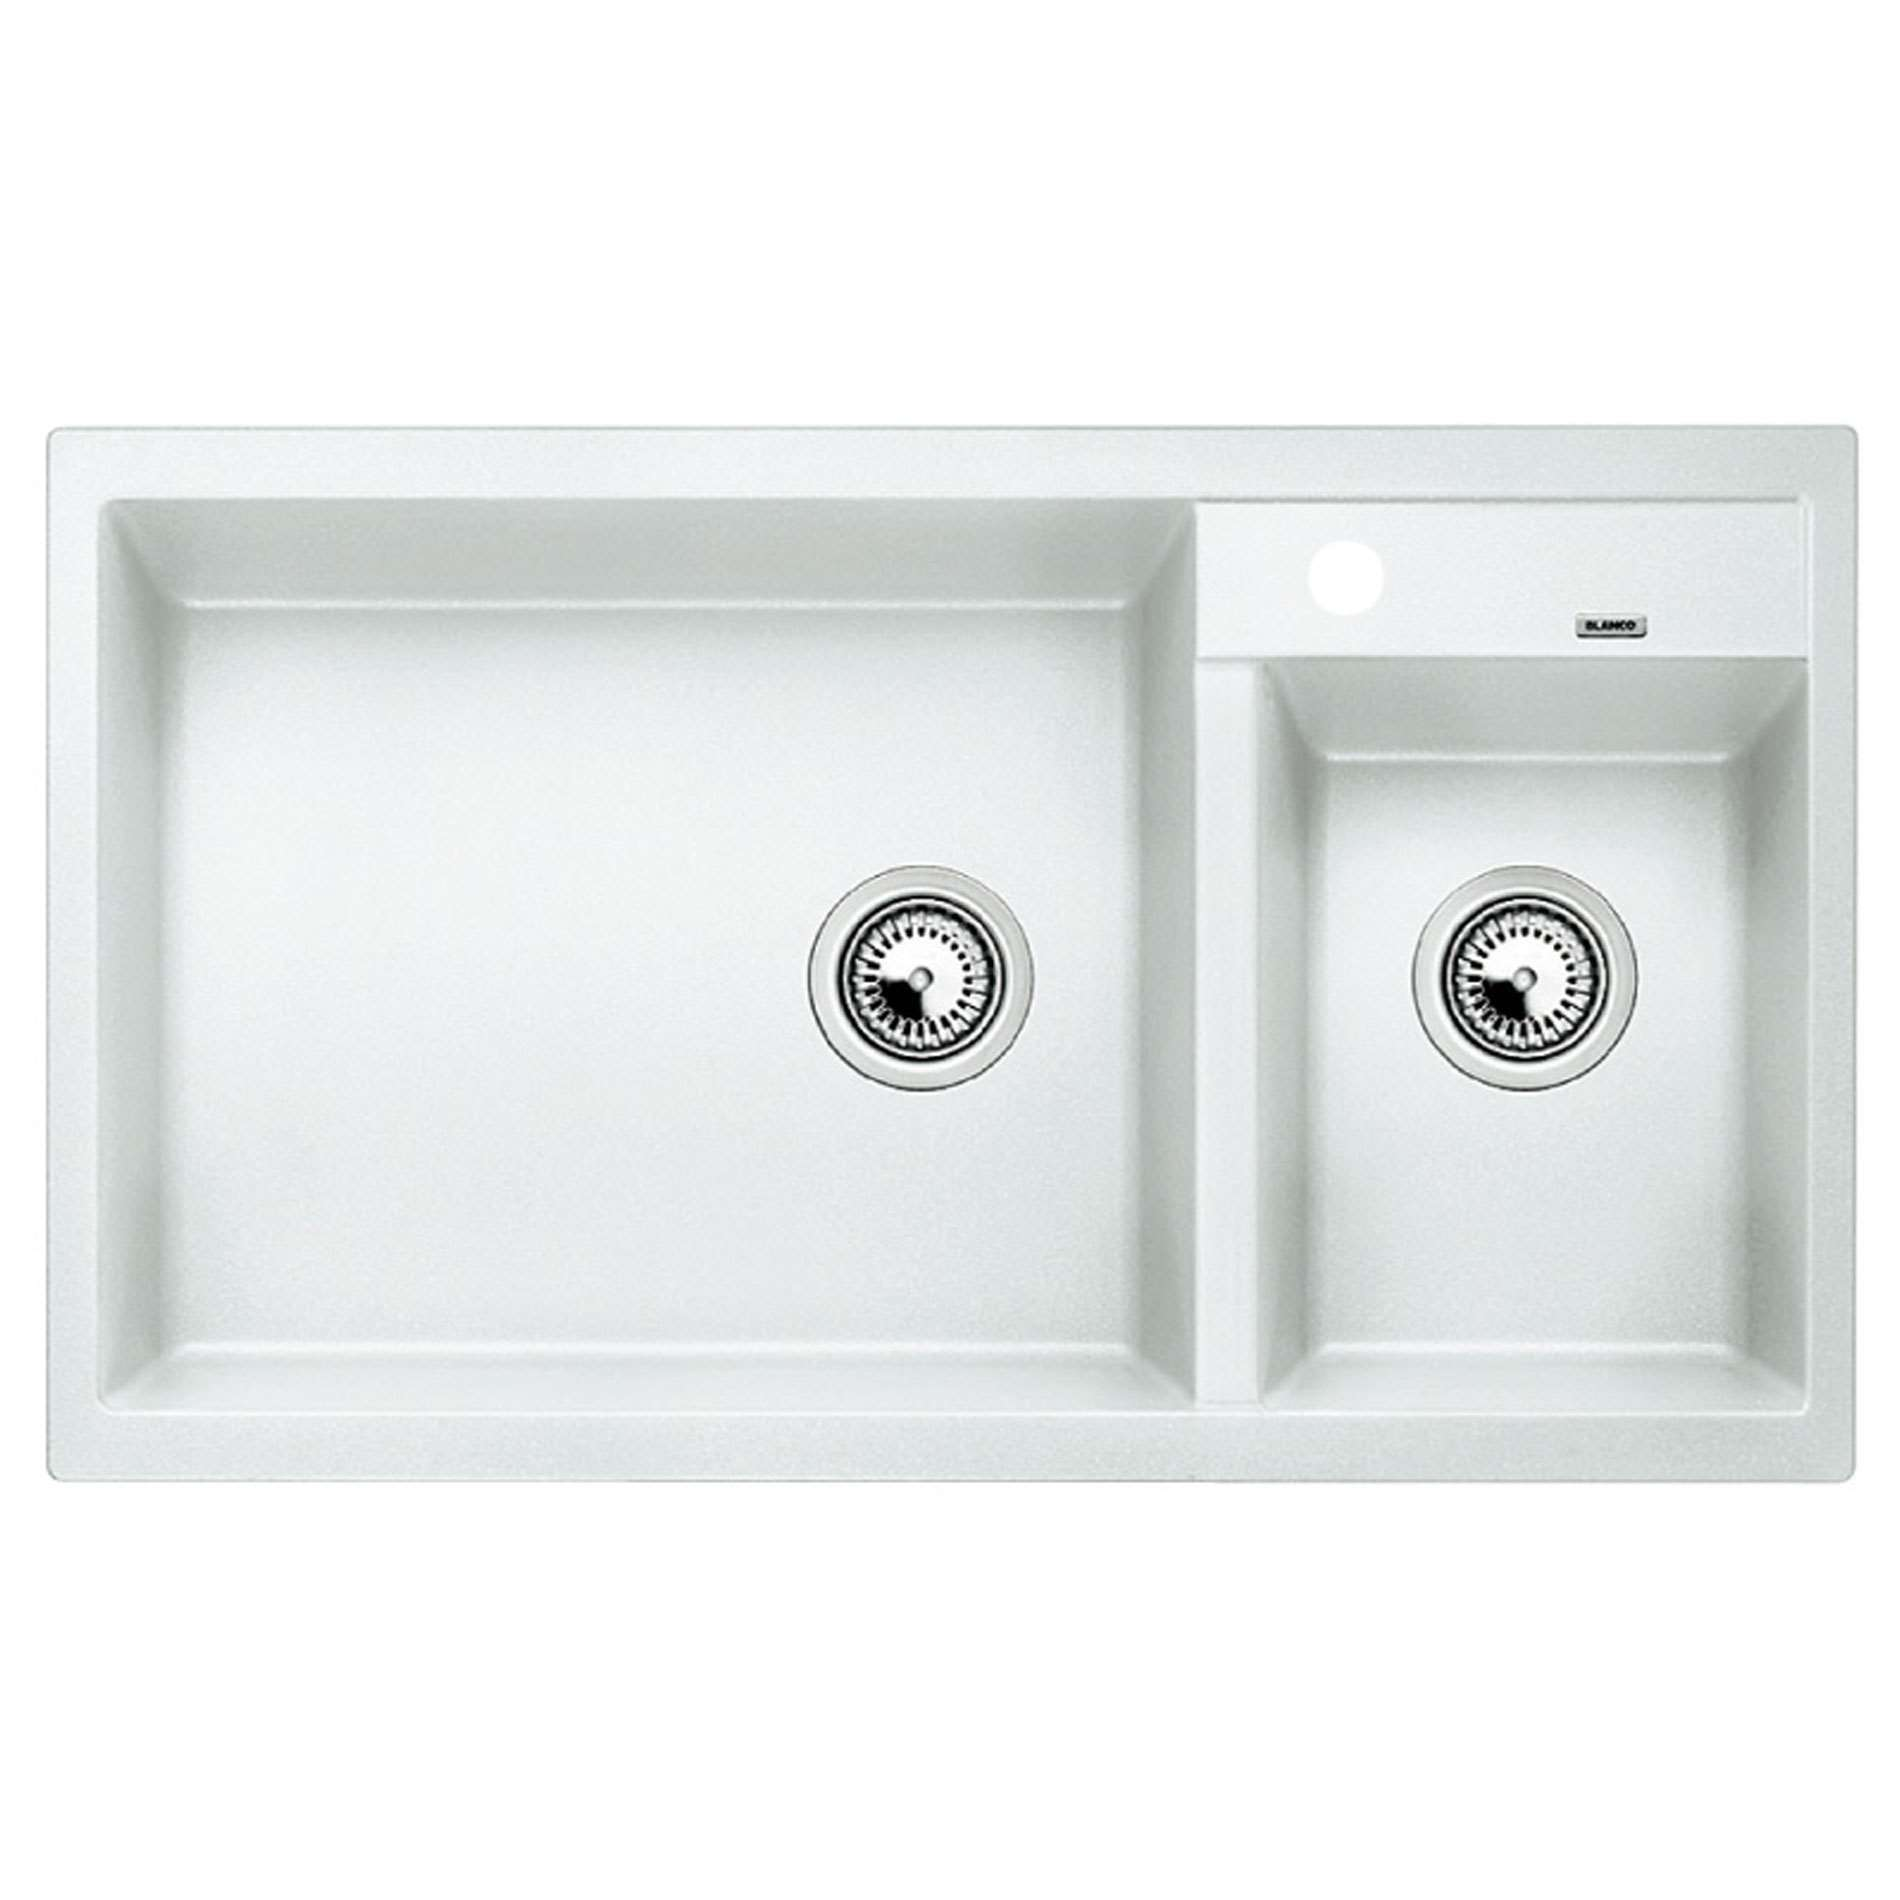 White Silgranit Sink : Blanco: Metra 9 White Silgranit Sink - Kitchen Sinks & Taps